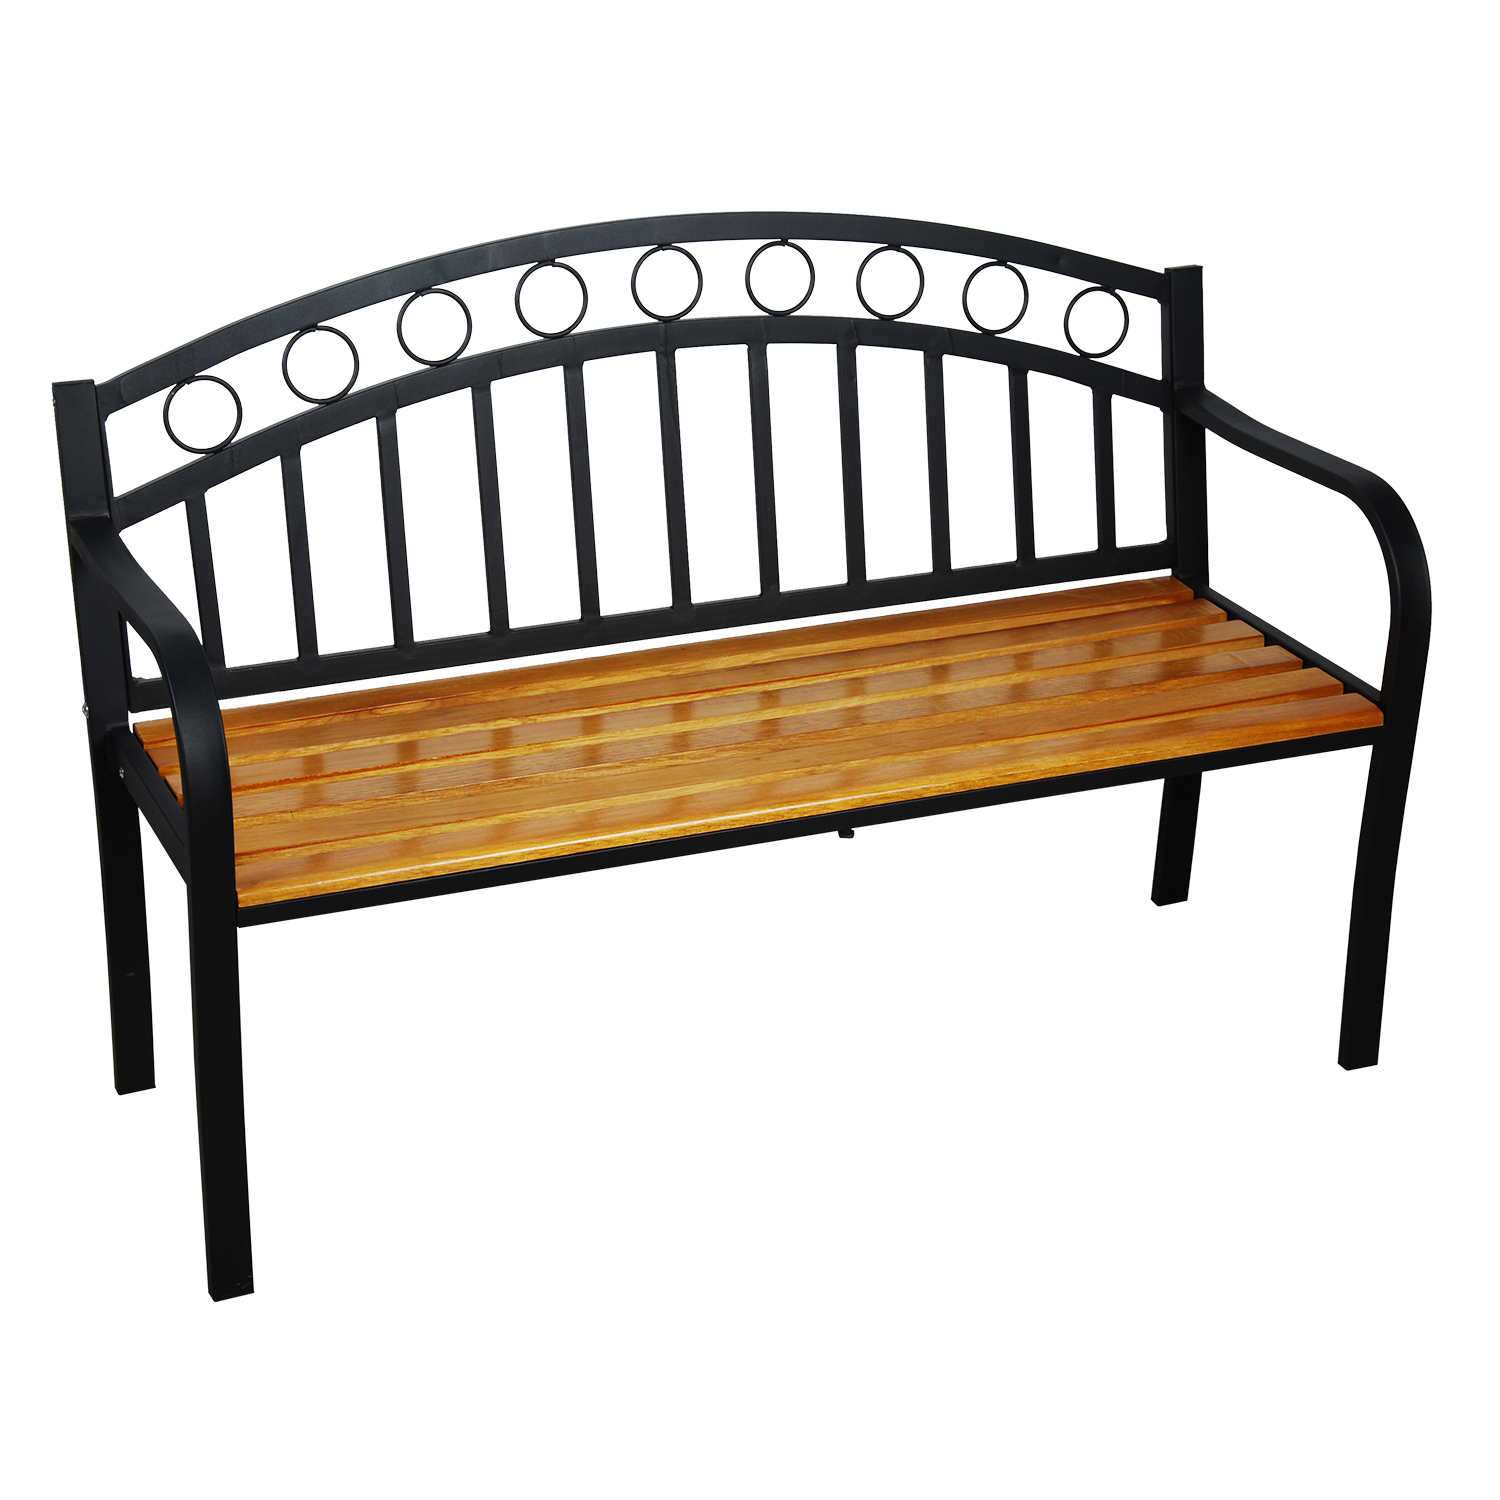 Outdoor Garden Benches Metal Iron Outdoor Bench White Metal Image Abovemetal Garden Wrought